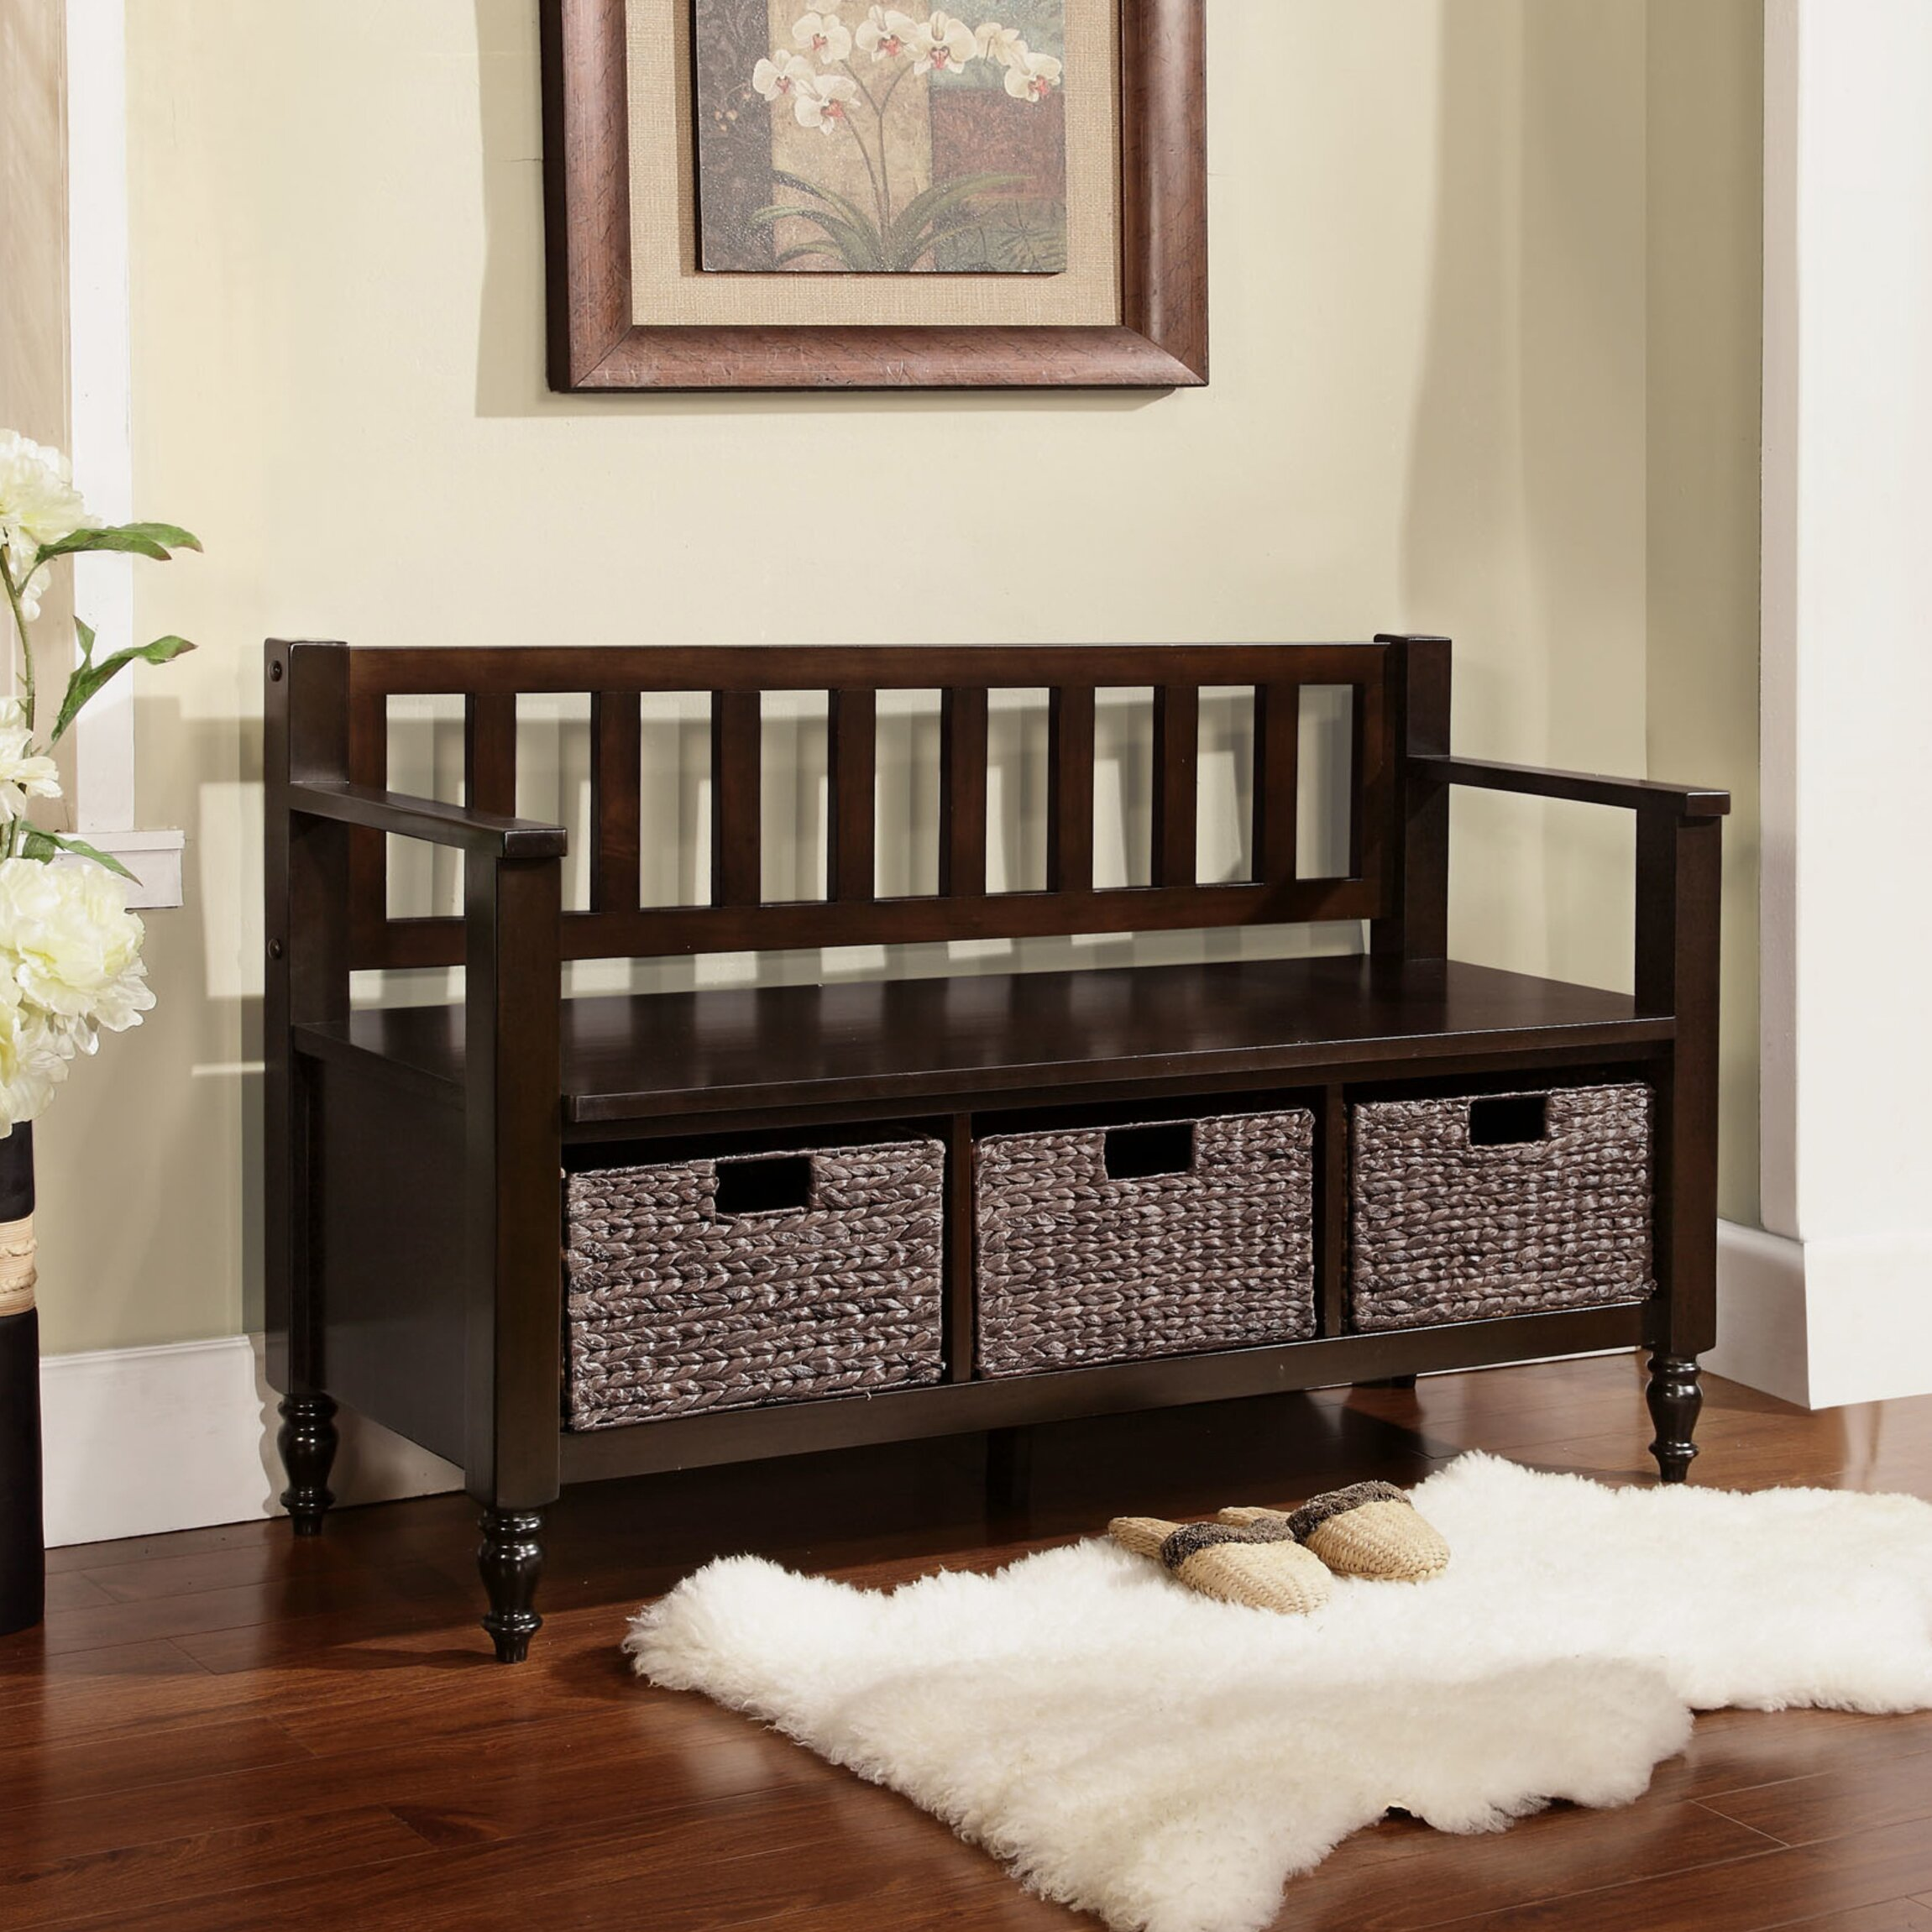 Simpli Home Dakota Entryway Bench amp Reviews Wayfair : Simpli Home Dakota Entryway Bench from www.wayfair.com size 2301 x 2301 jpeg 789kB